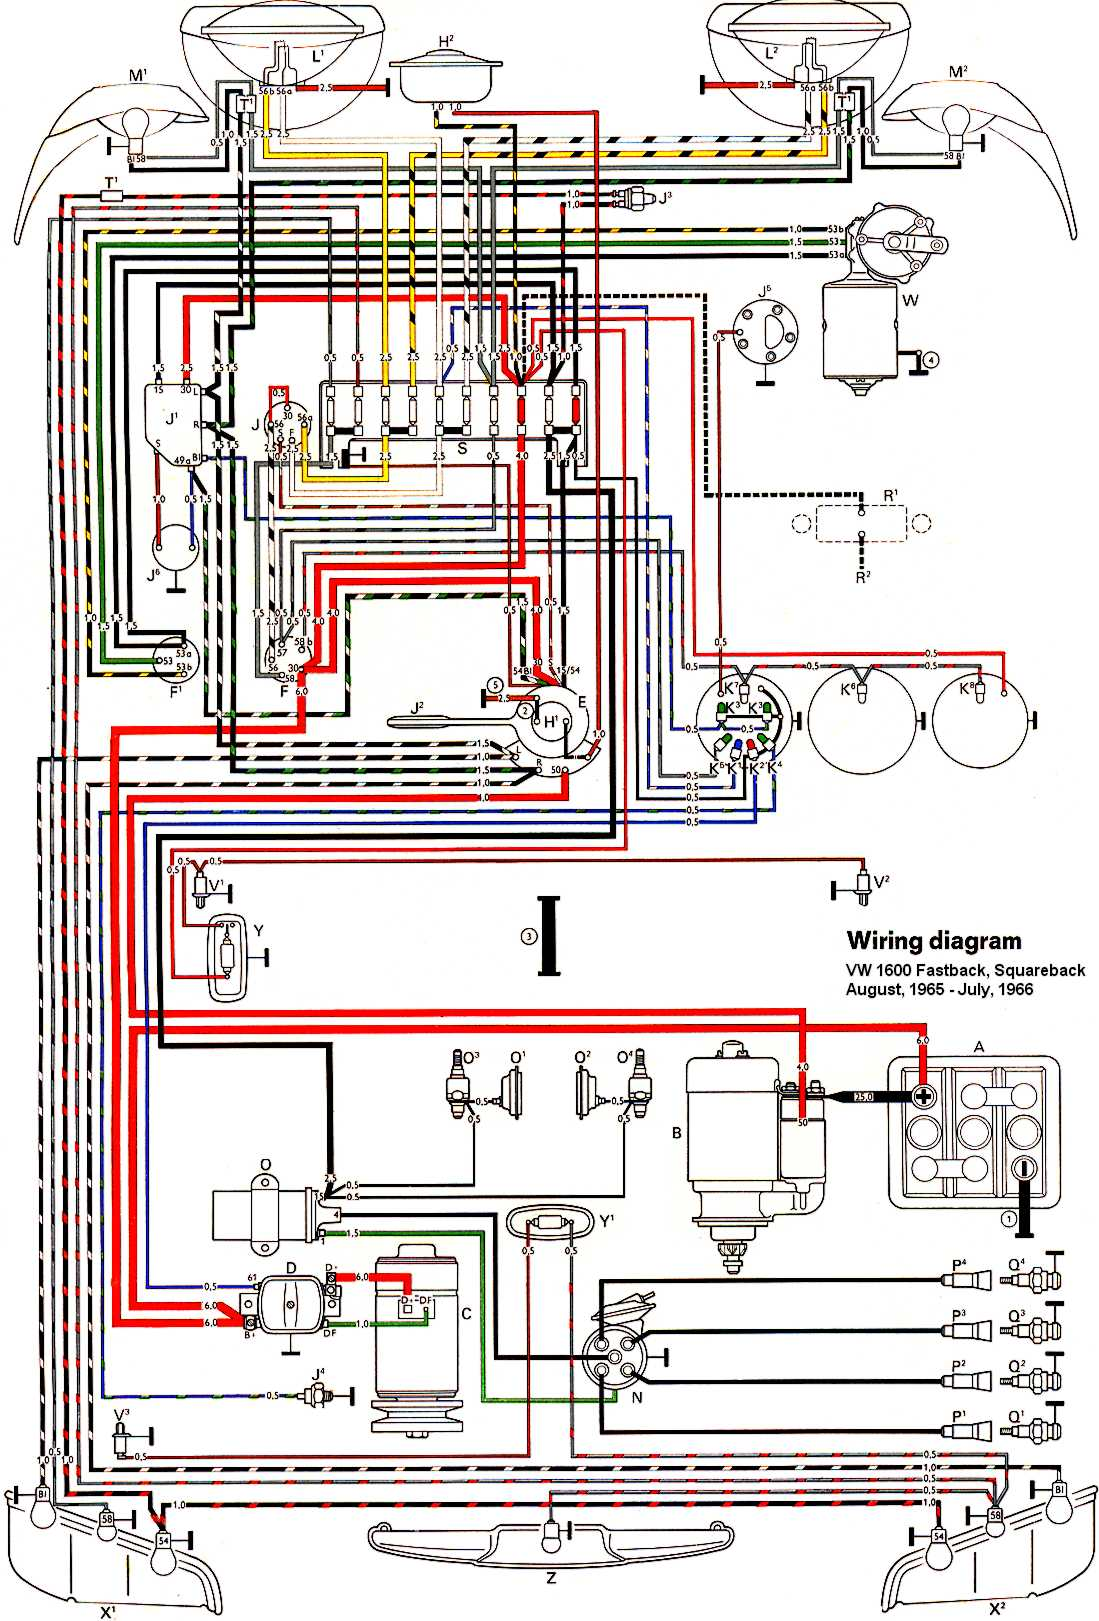 68 vw wiring diagram column wiring diagrams rh silviaardila co 73 vw bug wiring diagram 73 vw beetle wiring diagram